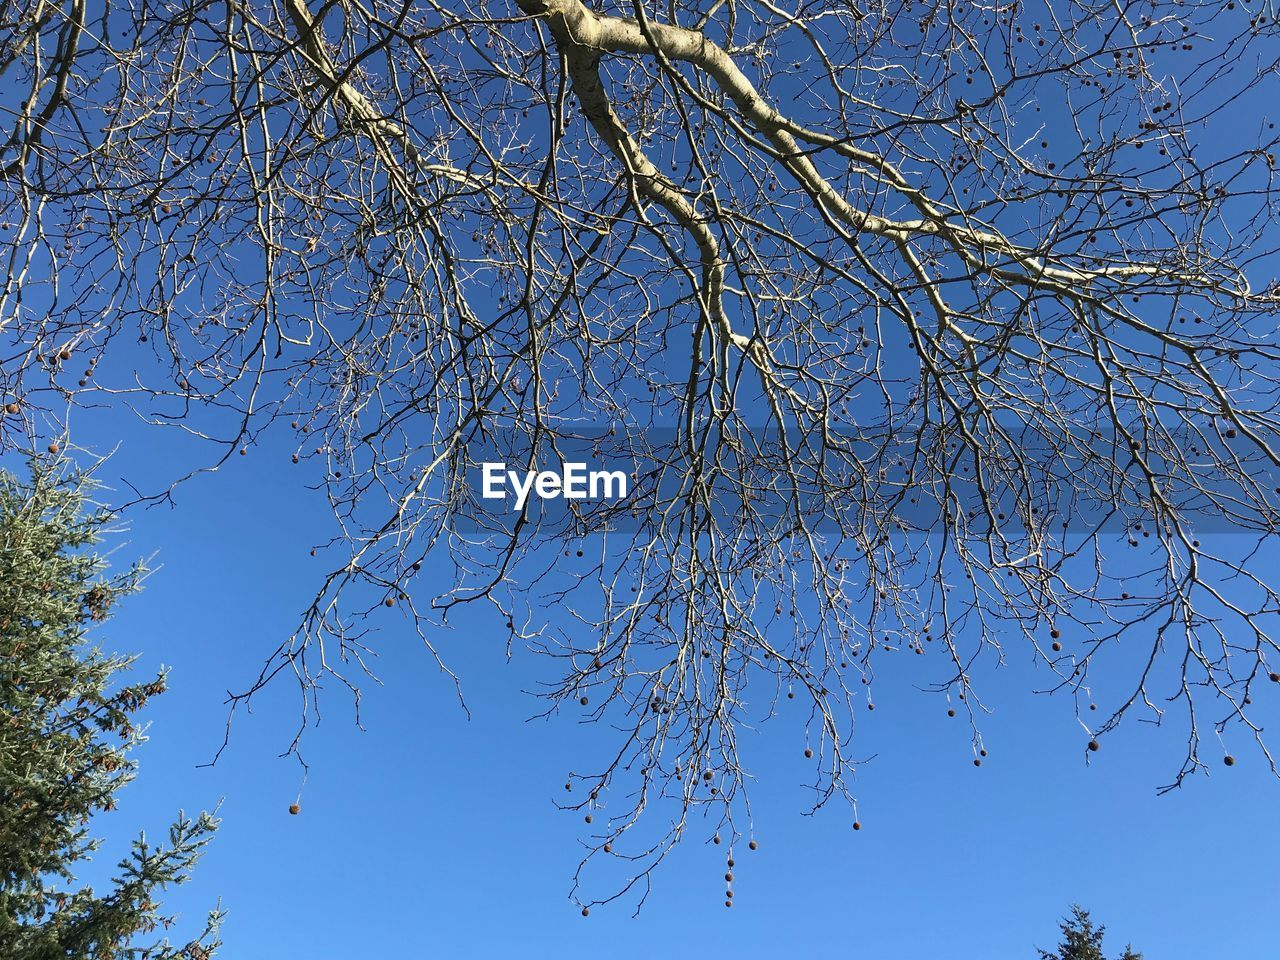 tree, sky, low angle view, branch, plant, blue, clear sky, beauty in nature, no people, nature, day, tranquility, bare tree, outdoors, growth, sunlight, autumn, scenics - nature, tranquil scene, flowering plant, directly below, tree canopy